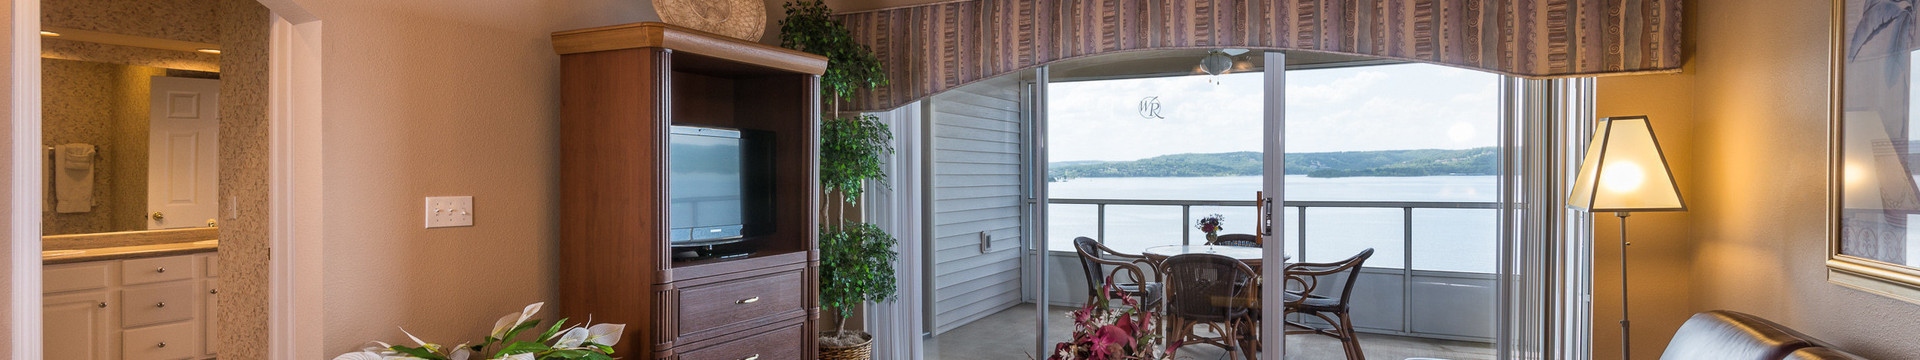 1 Bedroom Villa Suites at our Branson Resort | Living Area in One-Bedroom Deluxe